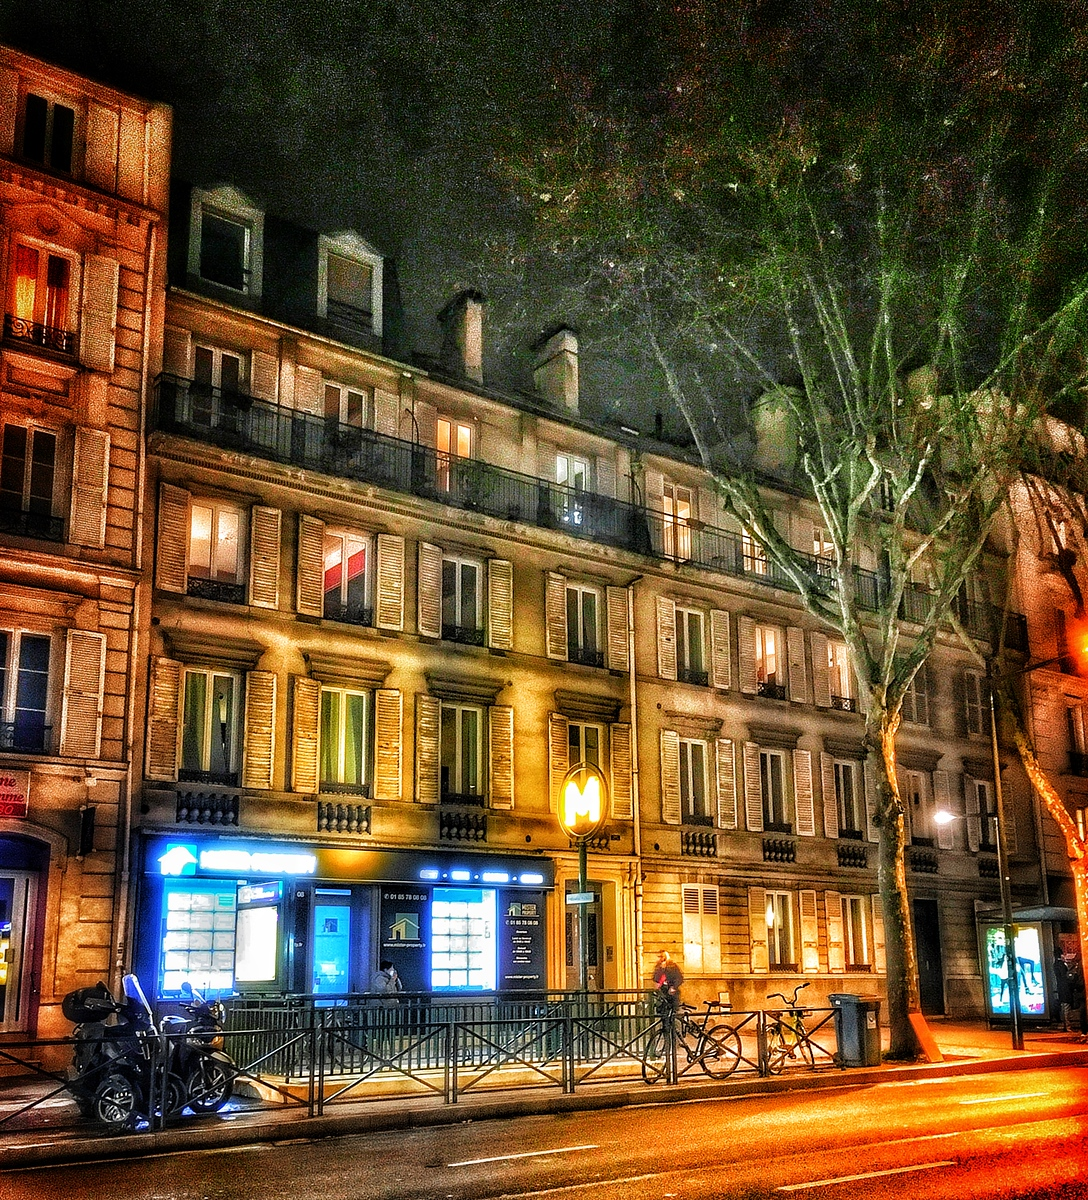 A Night In Boulogne-Billancourt